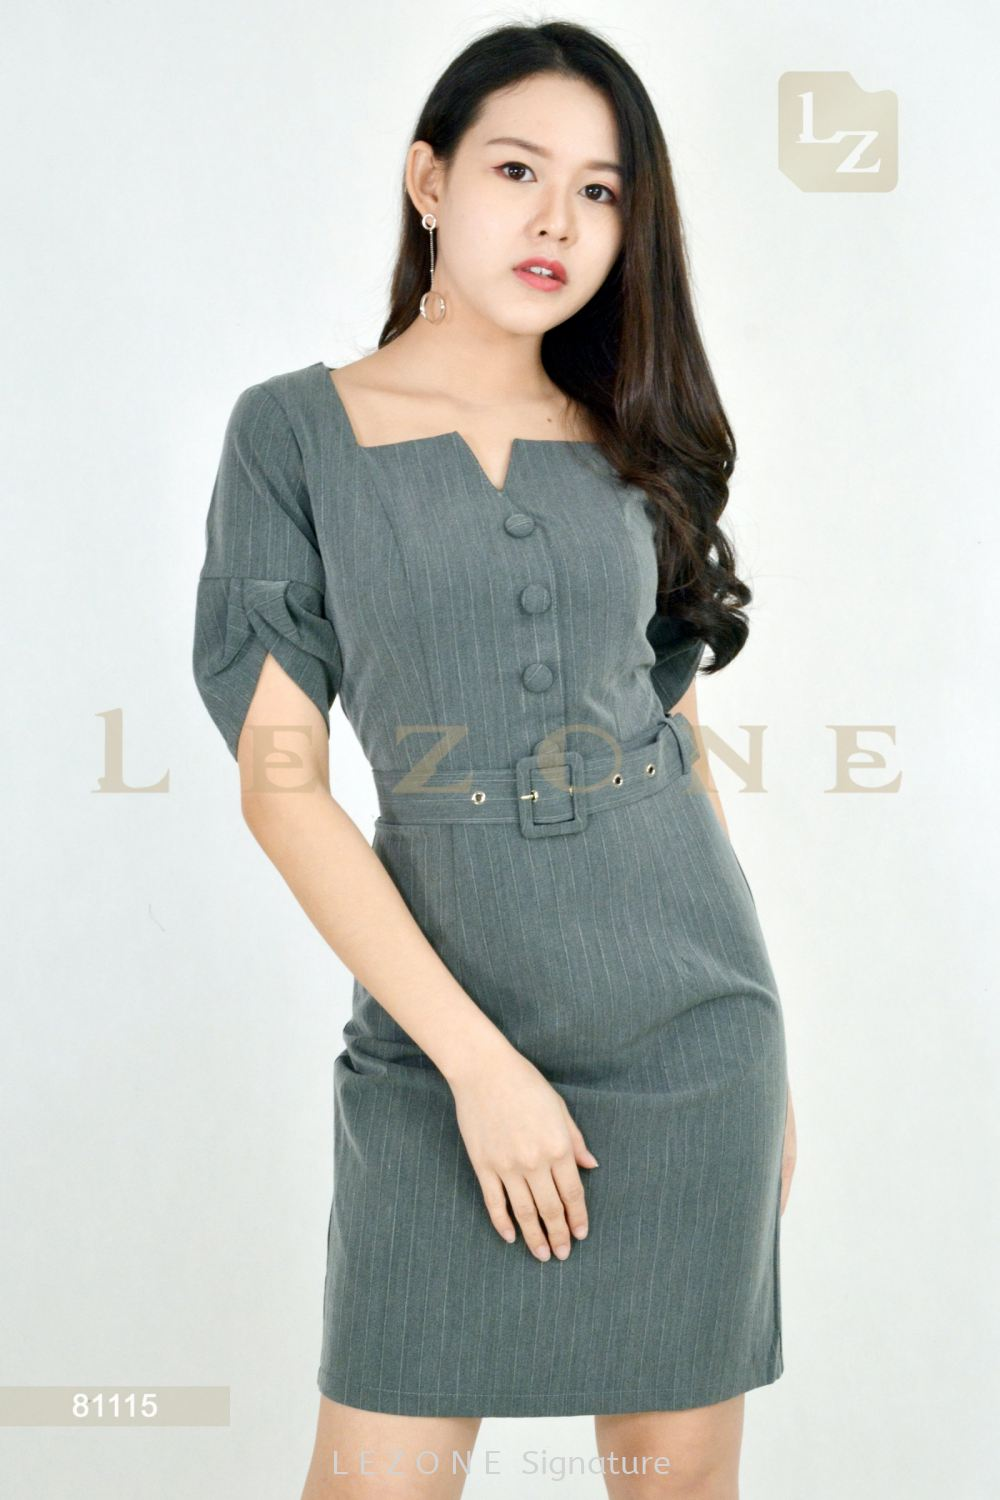 81115 PLUS SIZE EMBOSS STRIPED DRESS¡¾MEMBER SALE 45% NON-MEMBER SALE 35%¡¿ M E M B E R S A L E Selangor, Kuala Lumpur (KL), Malaysia, Serdang, Puchong, Cheras Supplier, Suppliers, Supply, Supplies | LE ZONE Signature